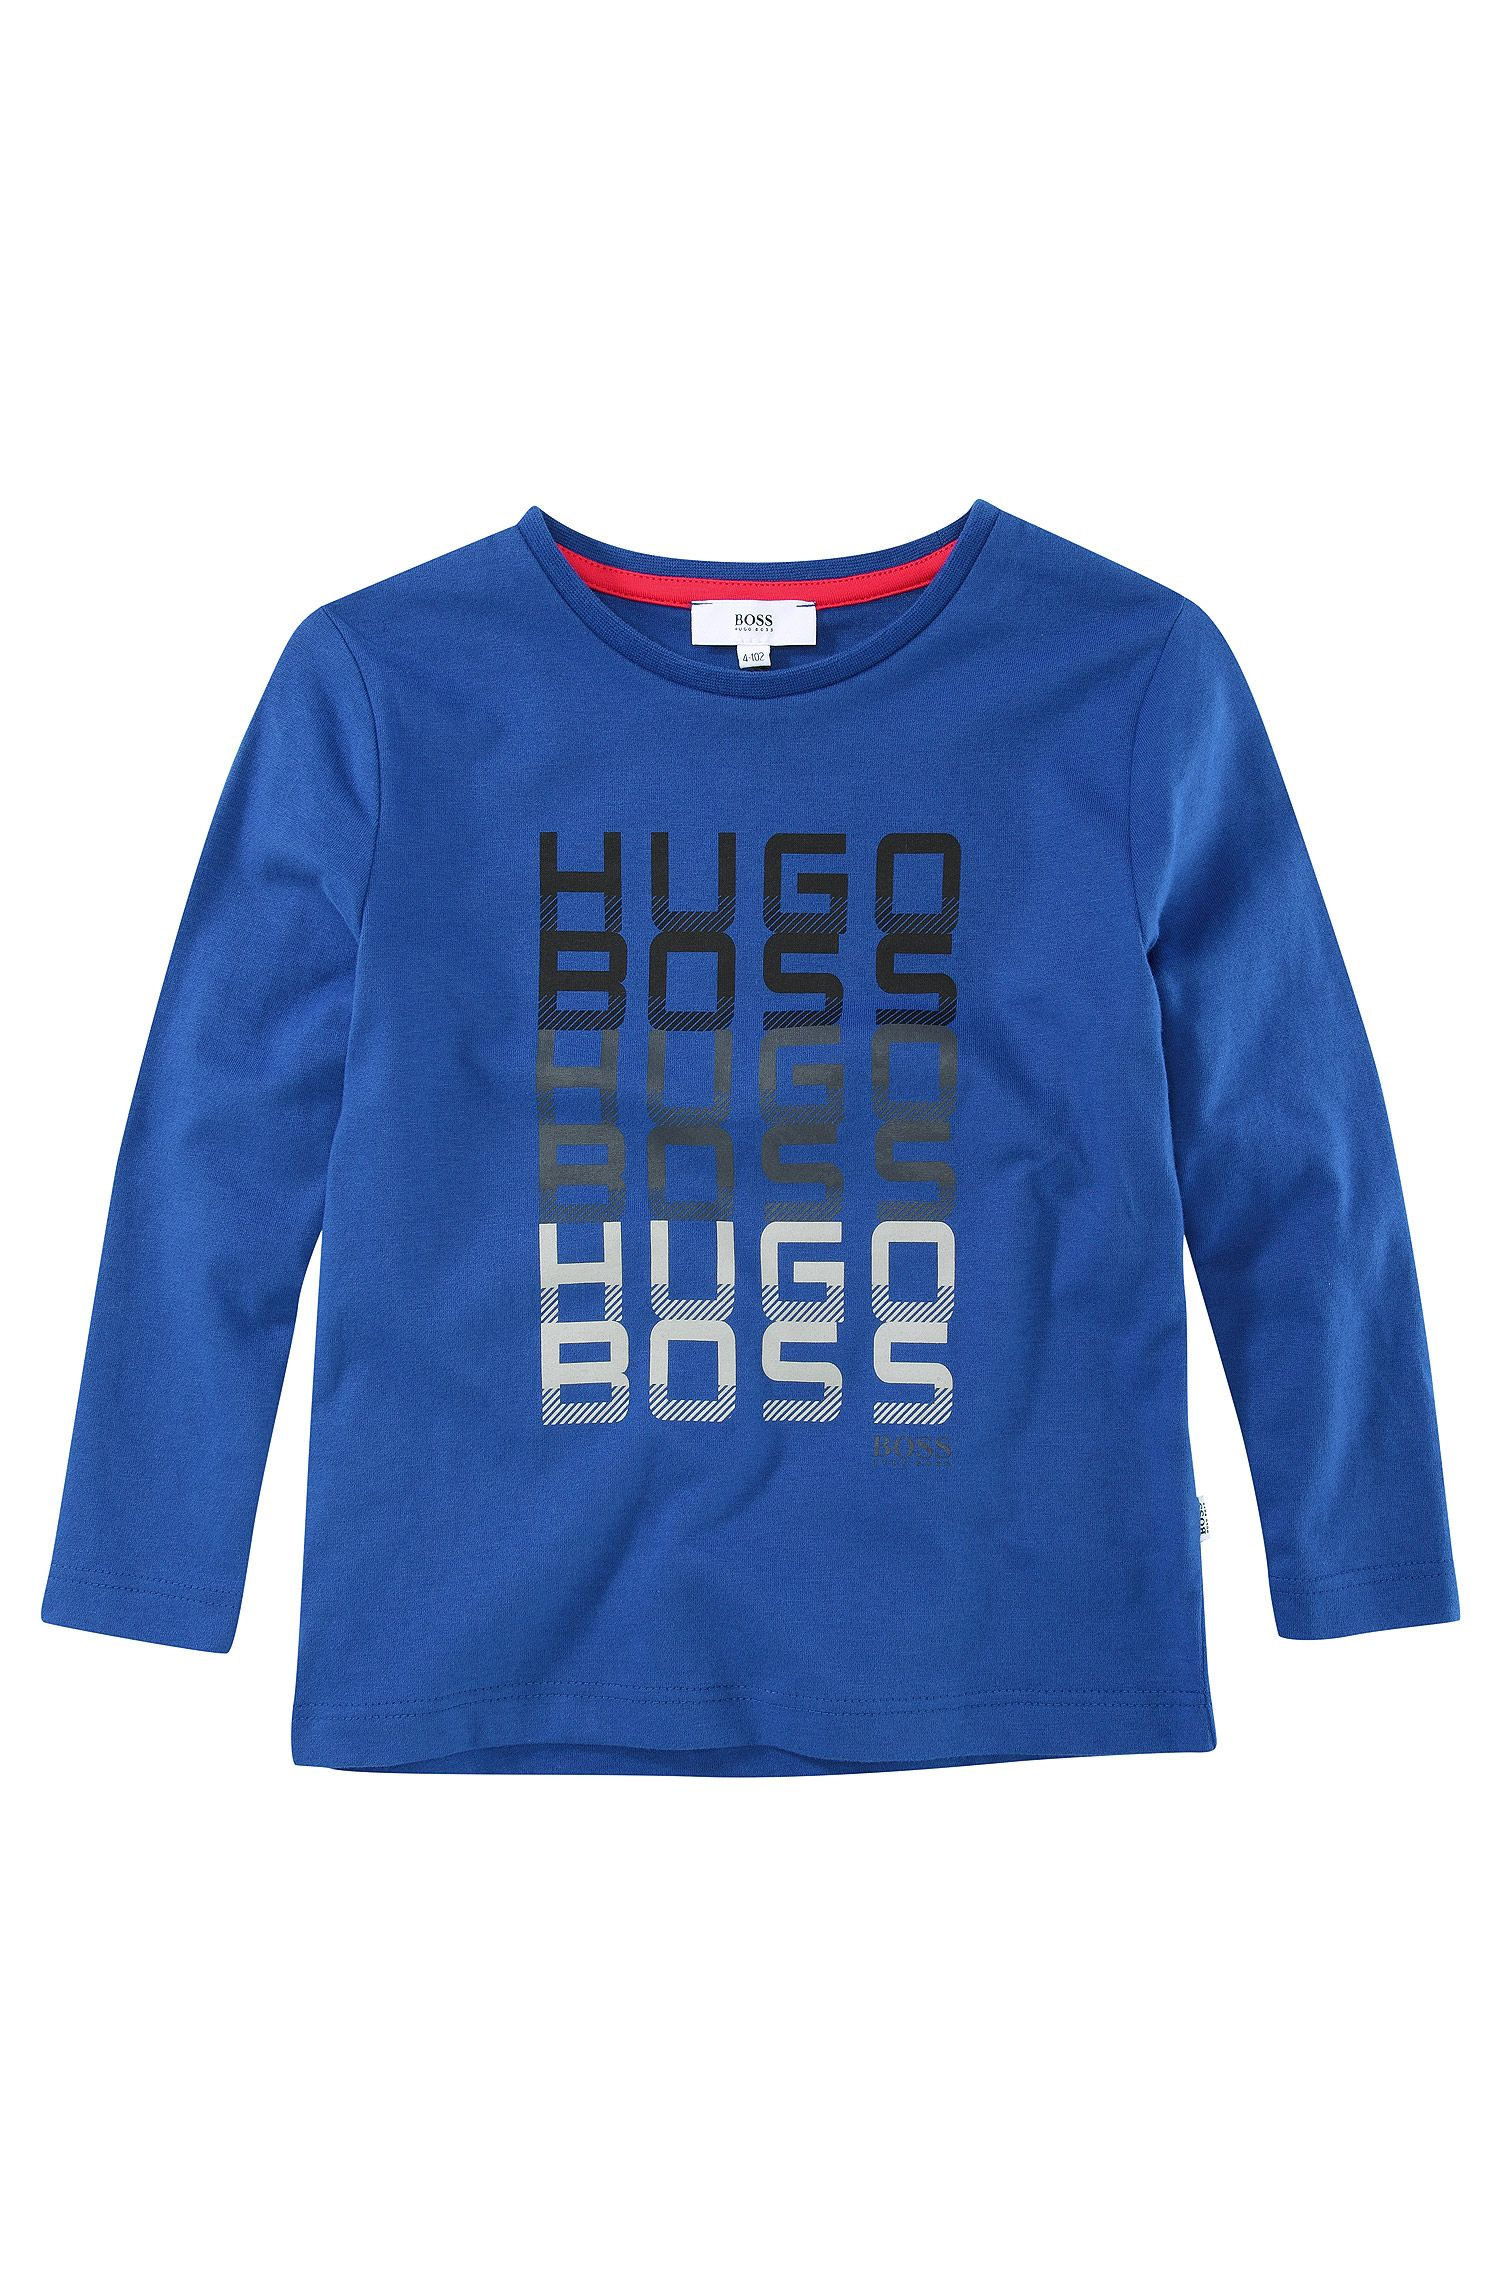 'J25589' | Boys Long-Sleeved Cotton Crewneck Graphic T-Shirt